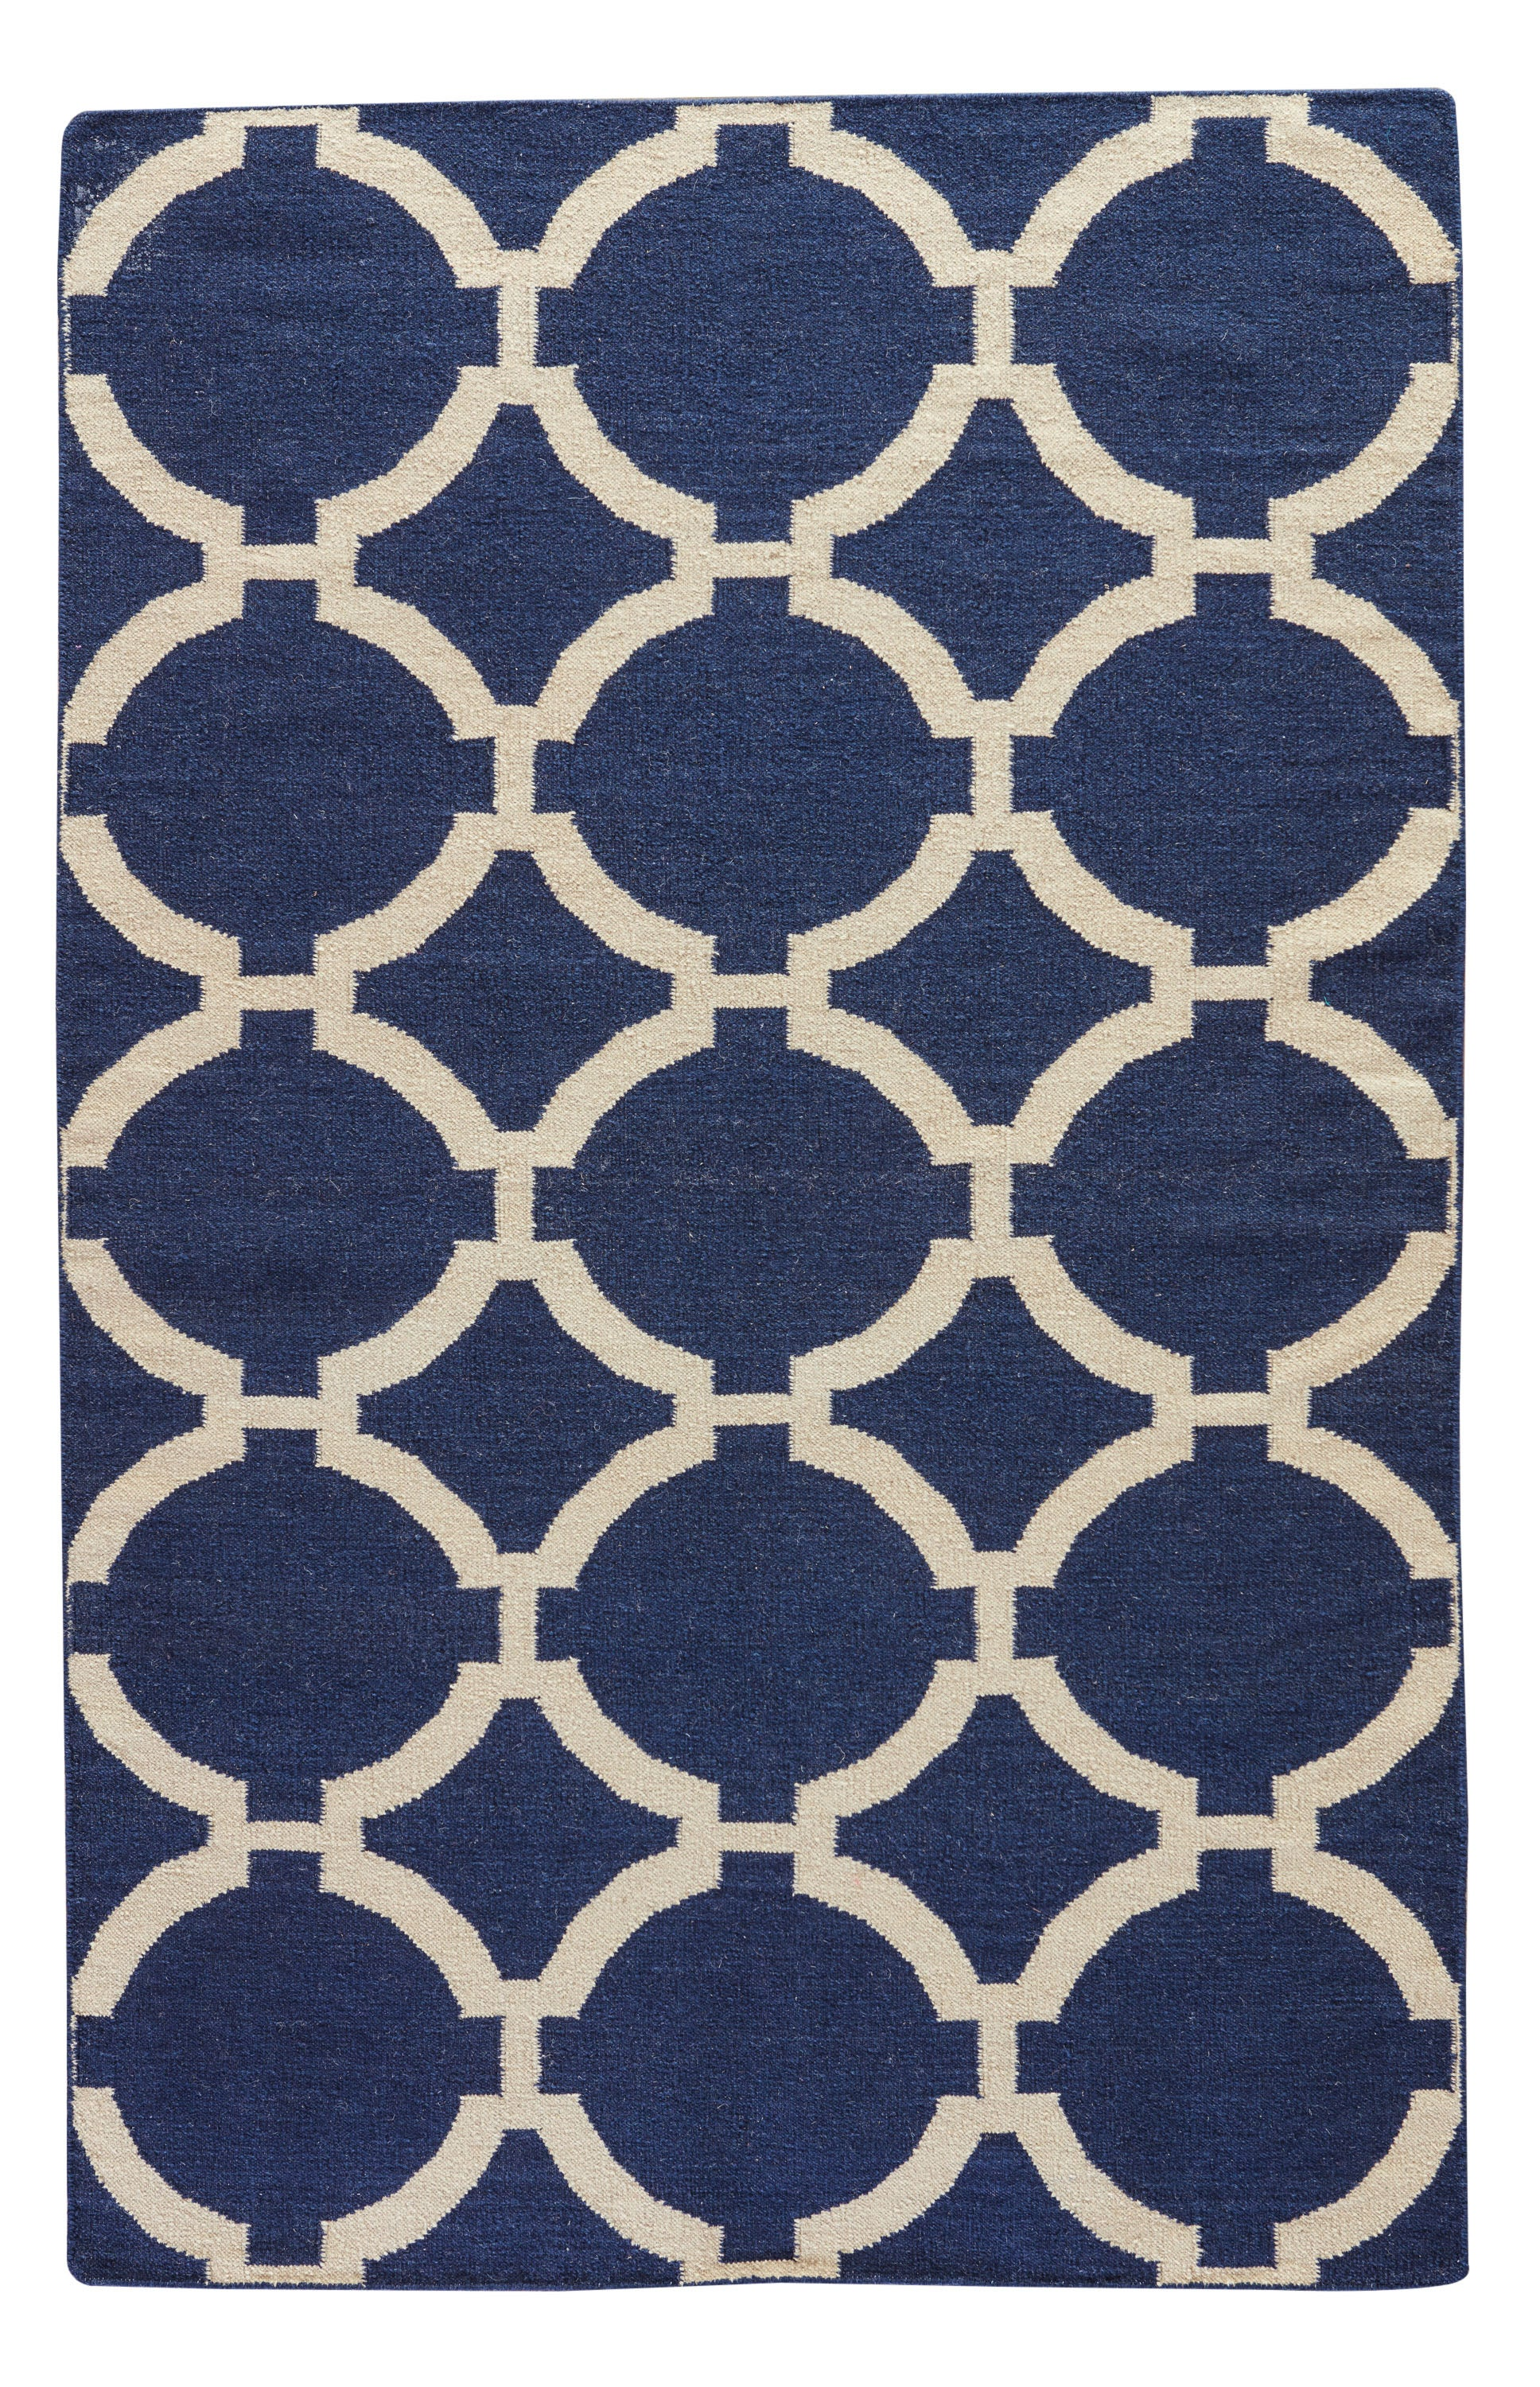 Rectangle Blue Trellis Dhurrie Wool Contemporary recommended for Kitchen, Bedroom, Bathroom, Dining Room, Office, Hallway, Living Room